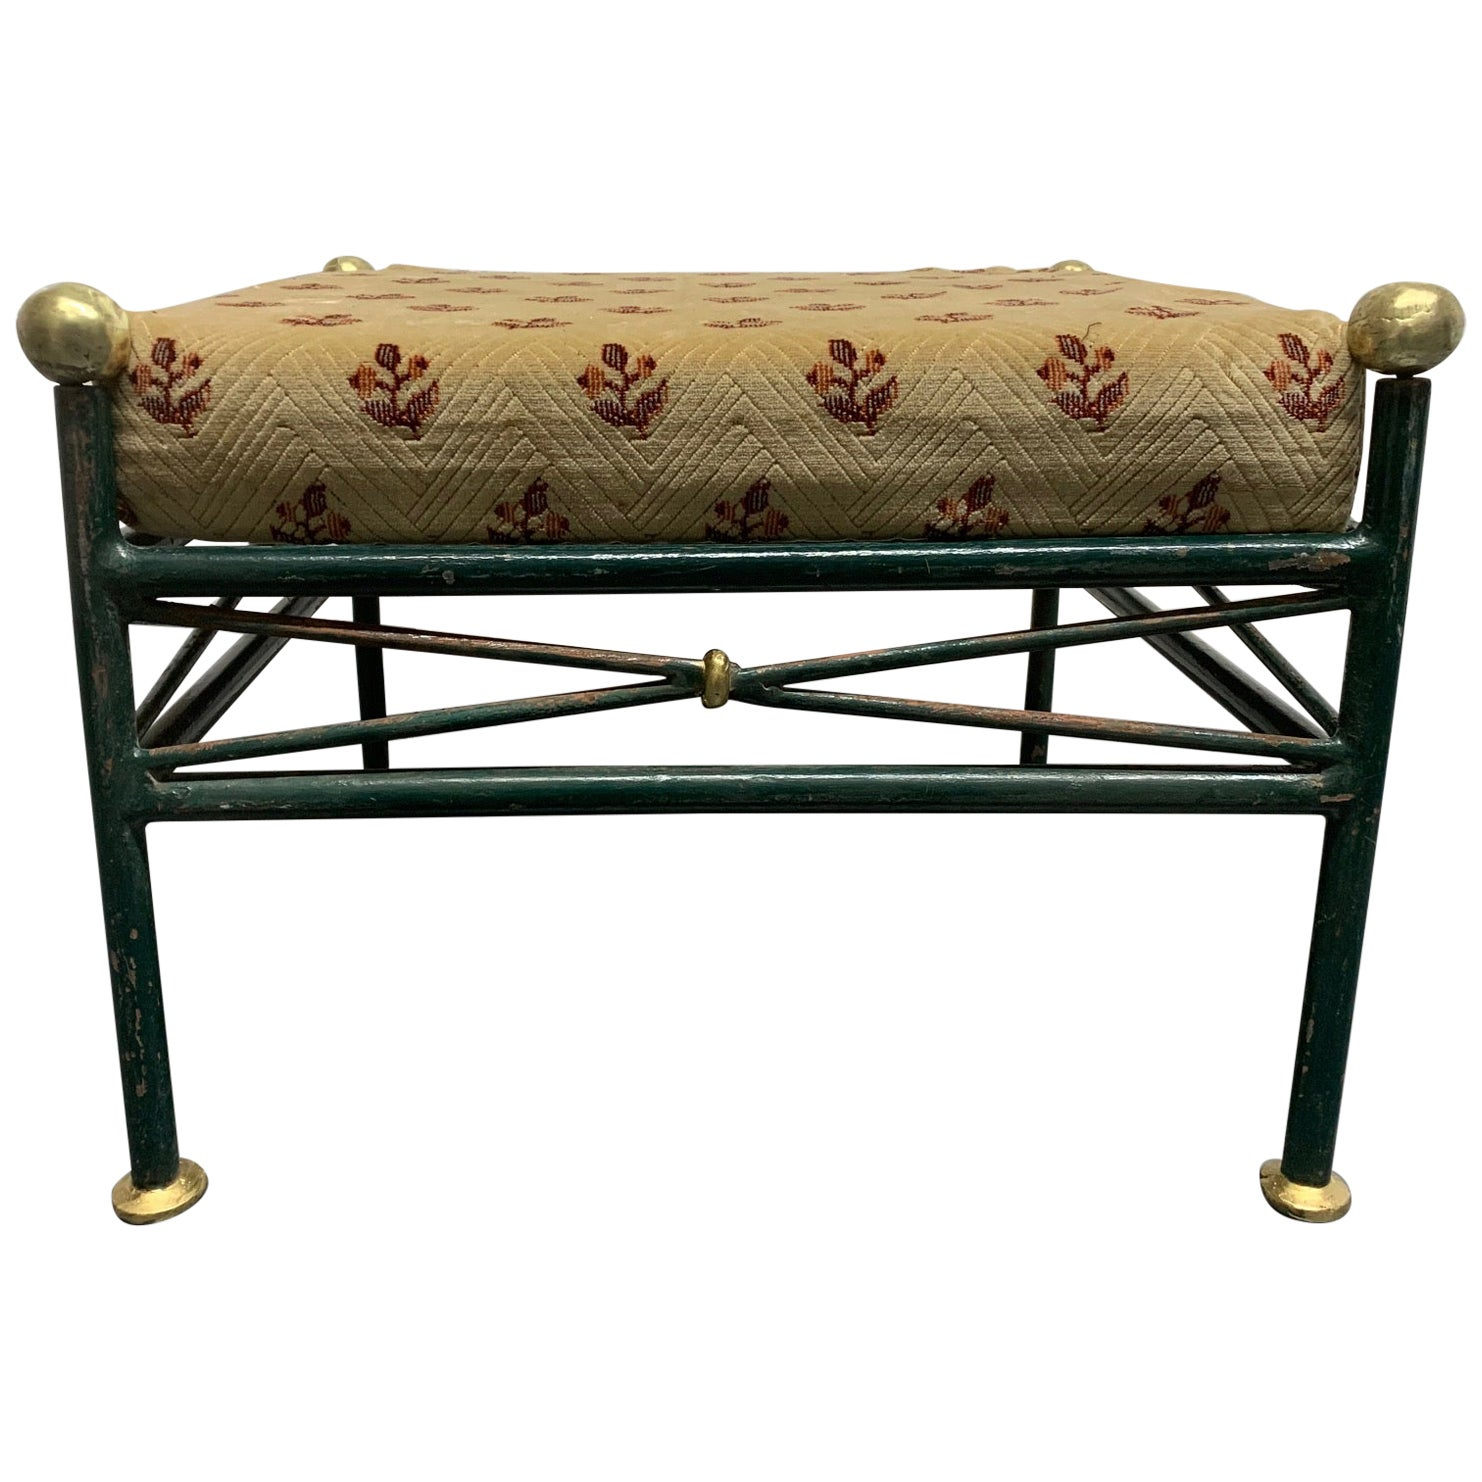 1950s French Painted Wrought Iron Bench